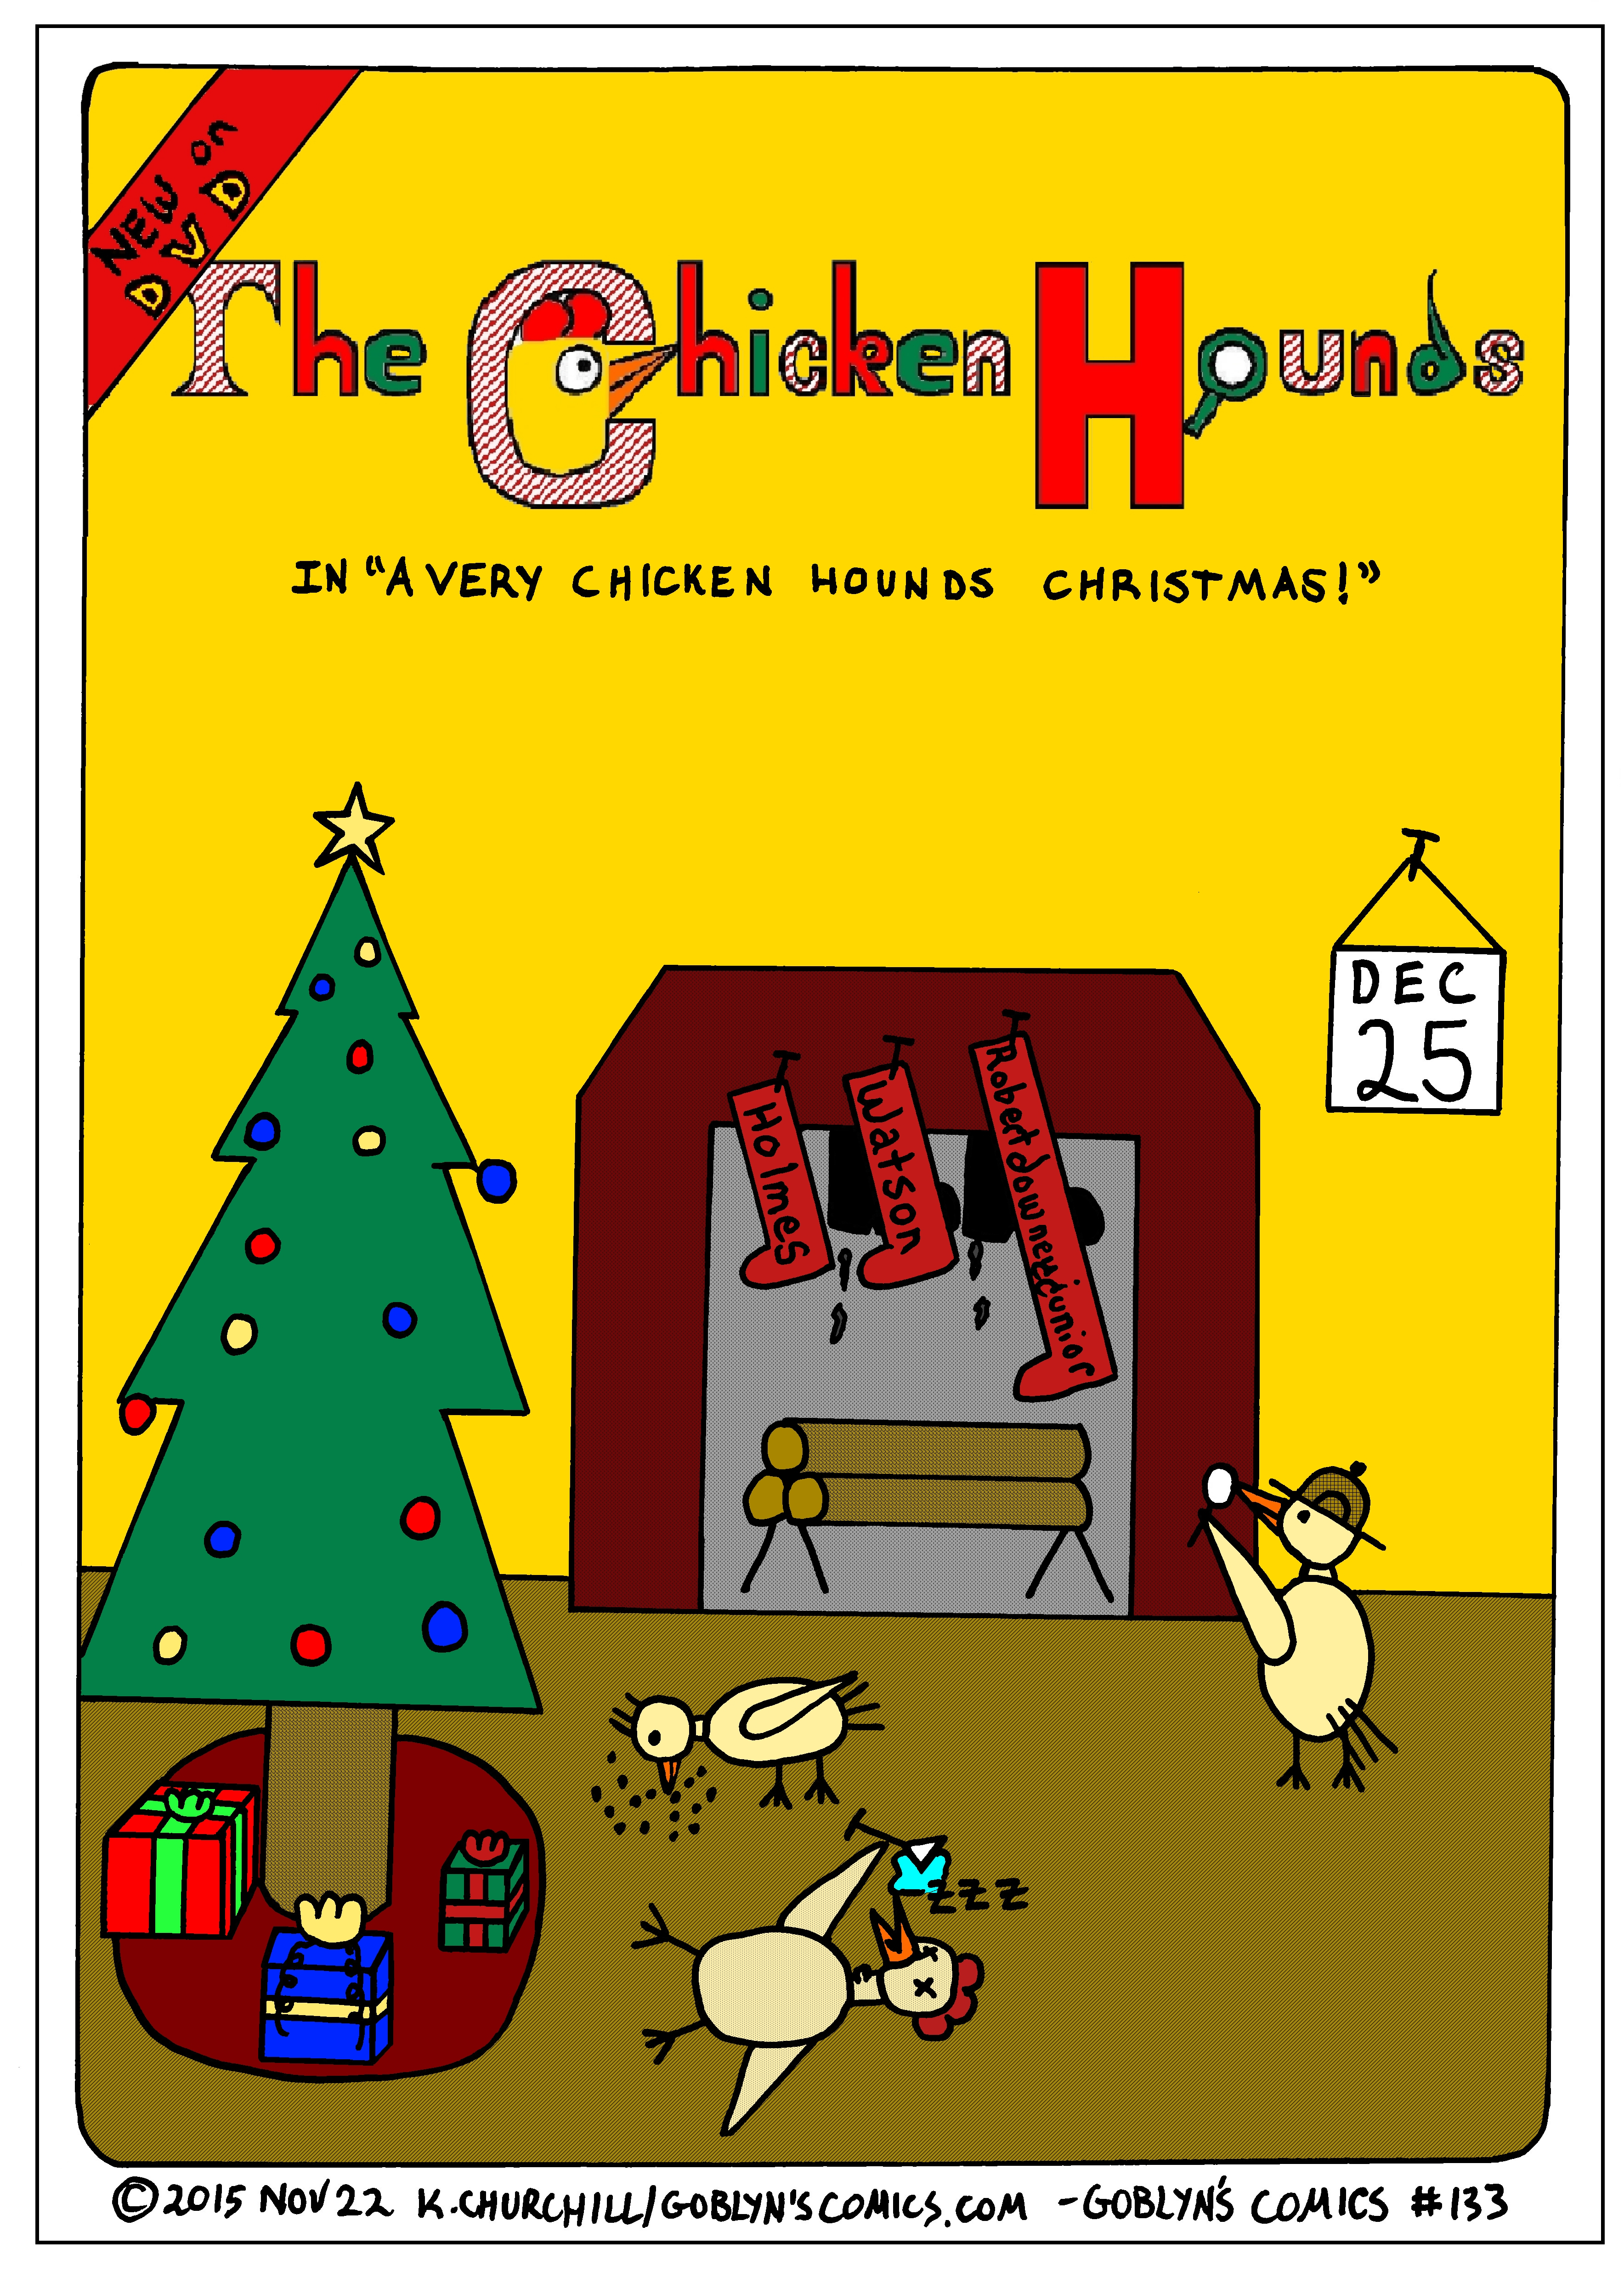 Chicken Hounds Christmas